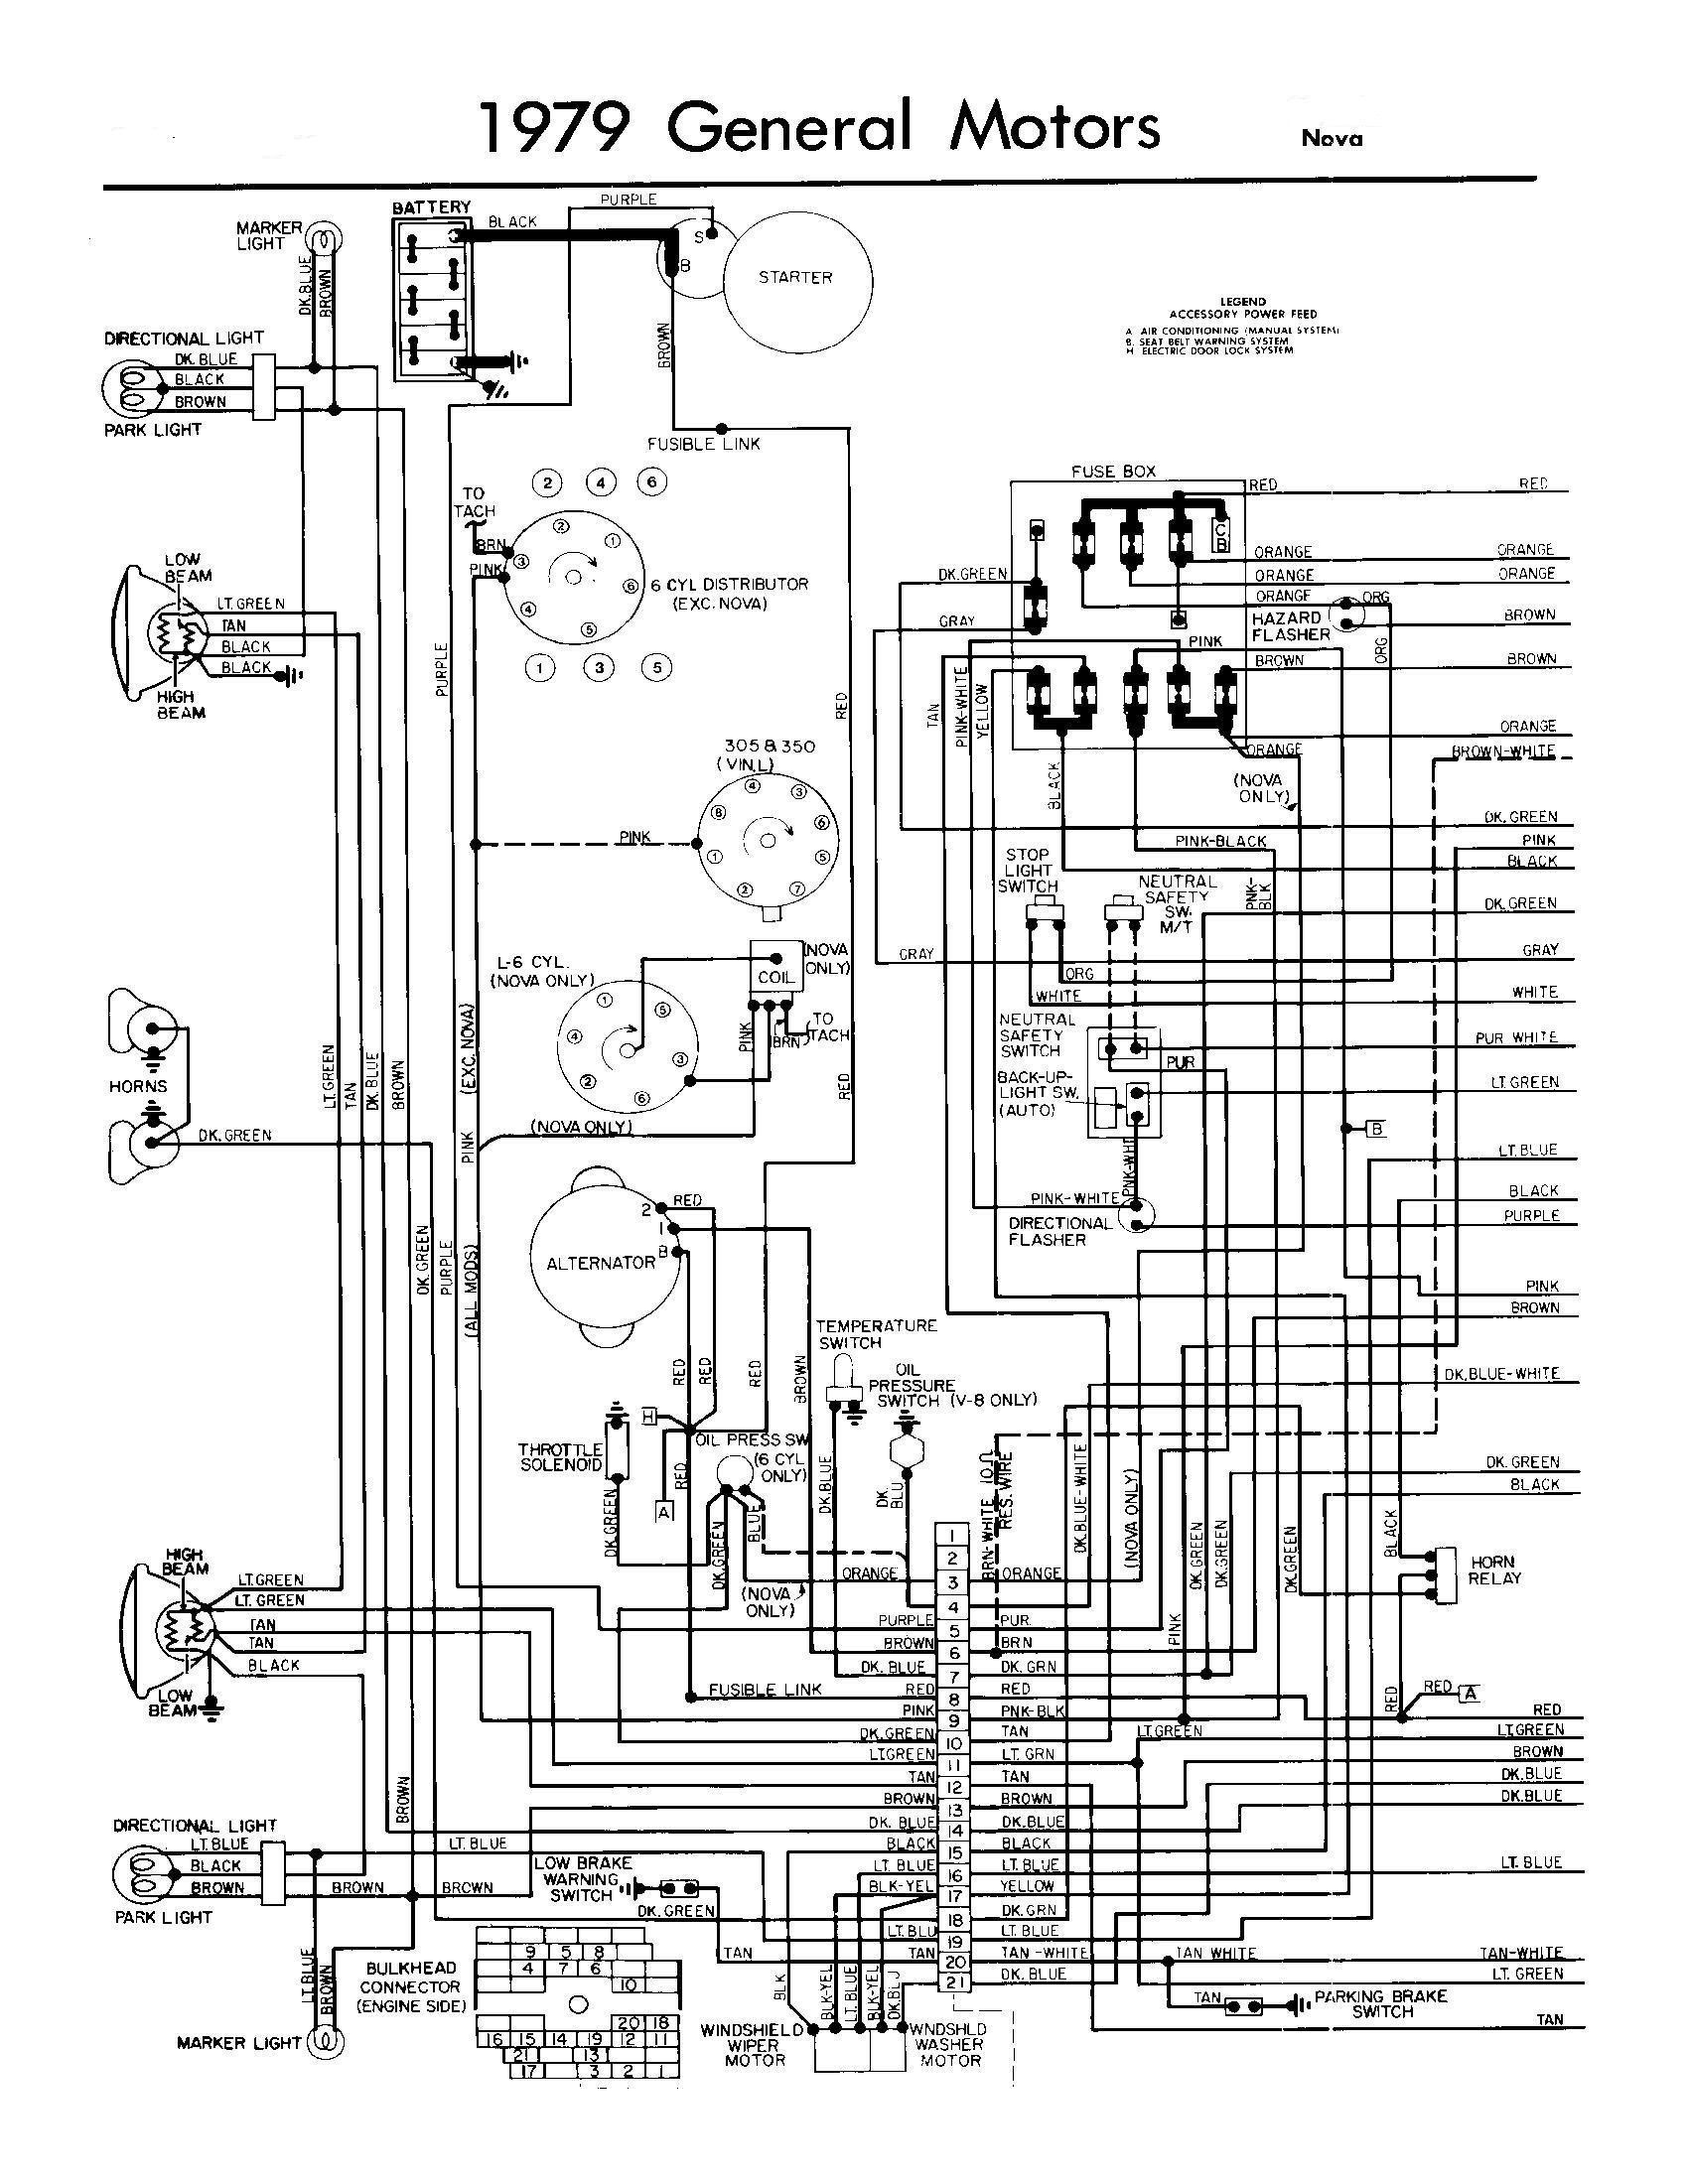 2007 Chevy Cobalt Fuse Box Diagram Wiring Library 1972 Impala Trusted U2022 2006